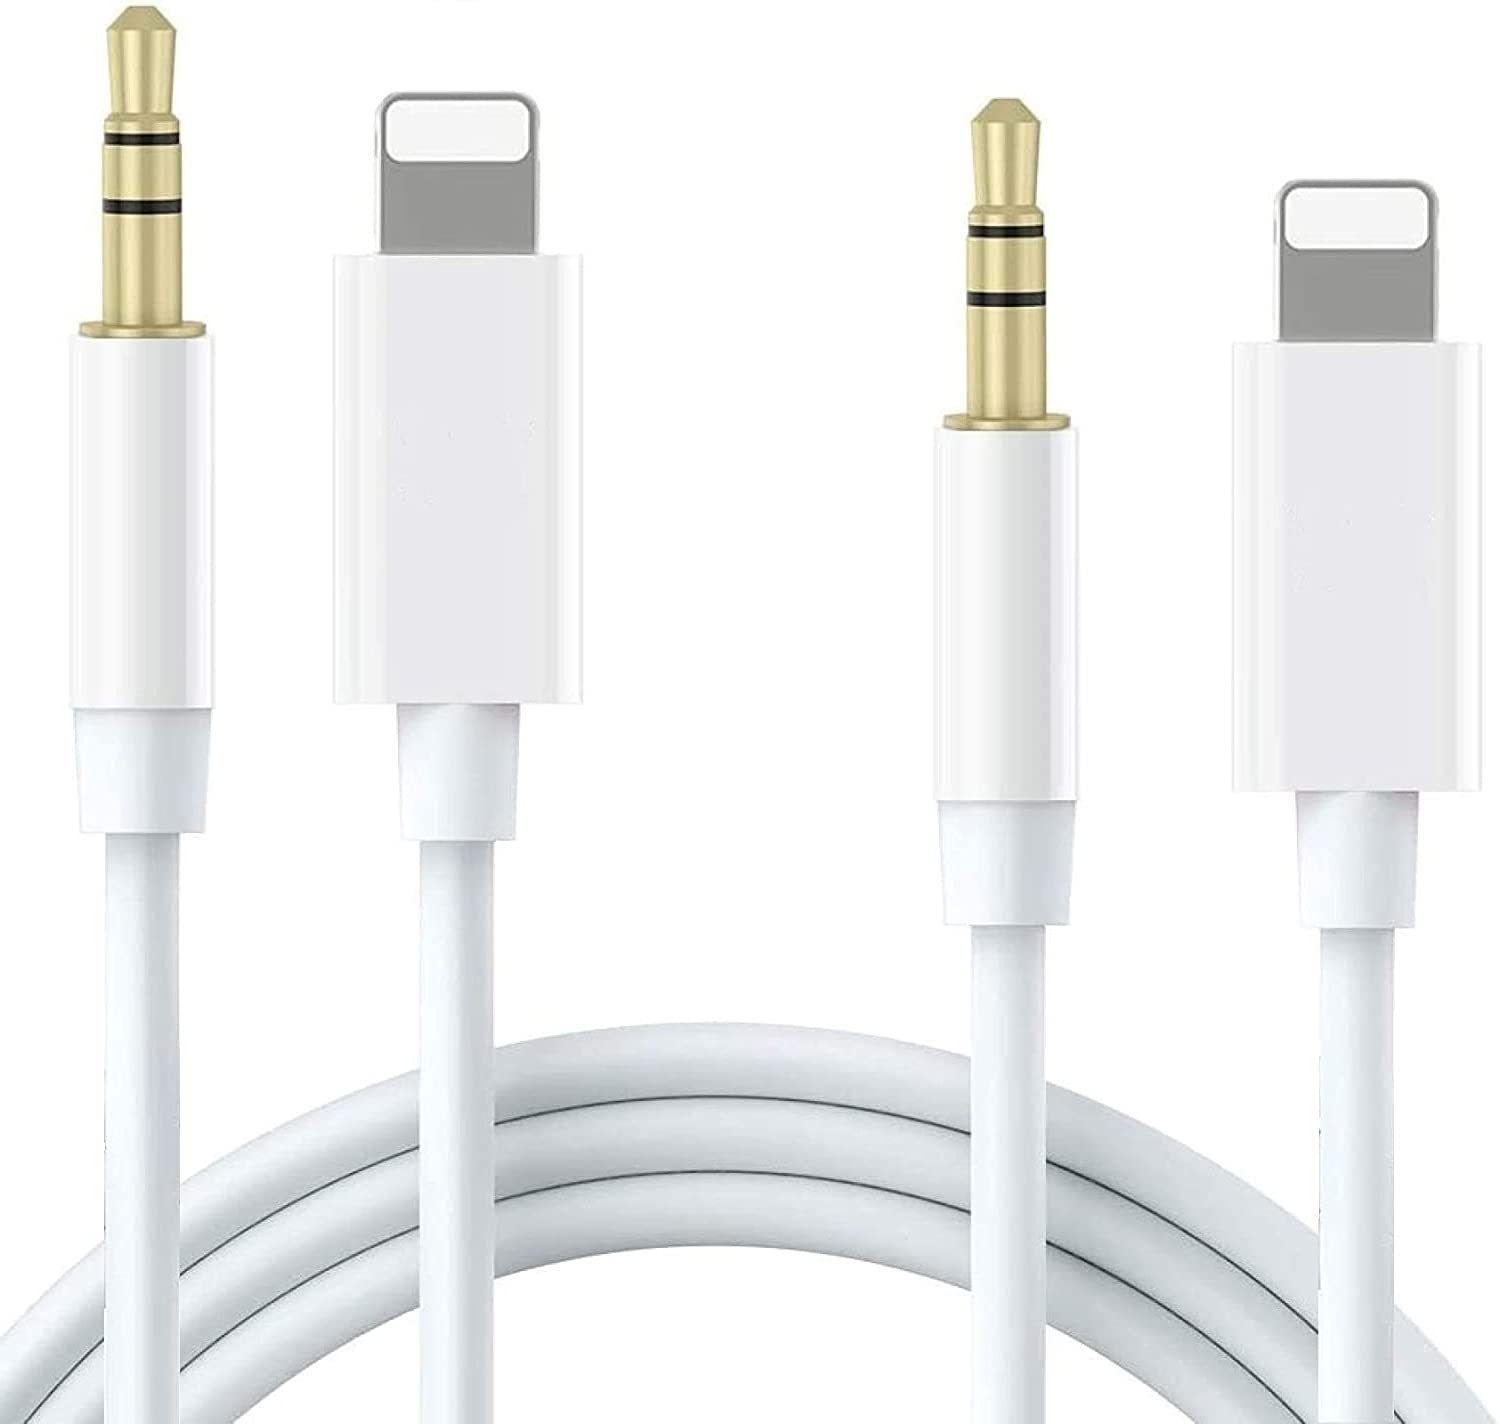 [Apple MFi Certified] AUX Cord for iPhone in Car, 2 PACK esbeecables lightning to 3.5 mm Headphone Jack Adapter for Car Stereo/Speaker/Headphone Audio cable, Compatible with iPhone 12/11/XS/XR/X/8/7